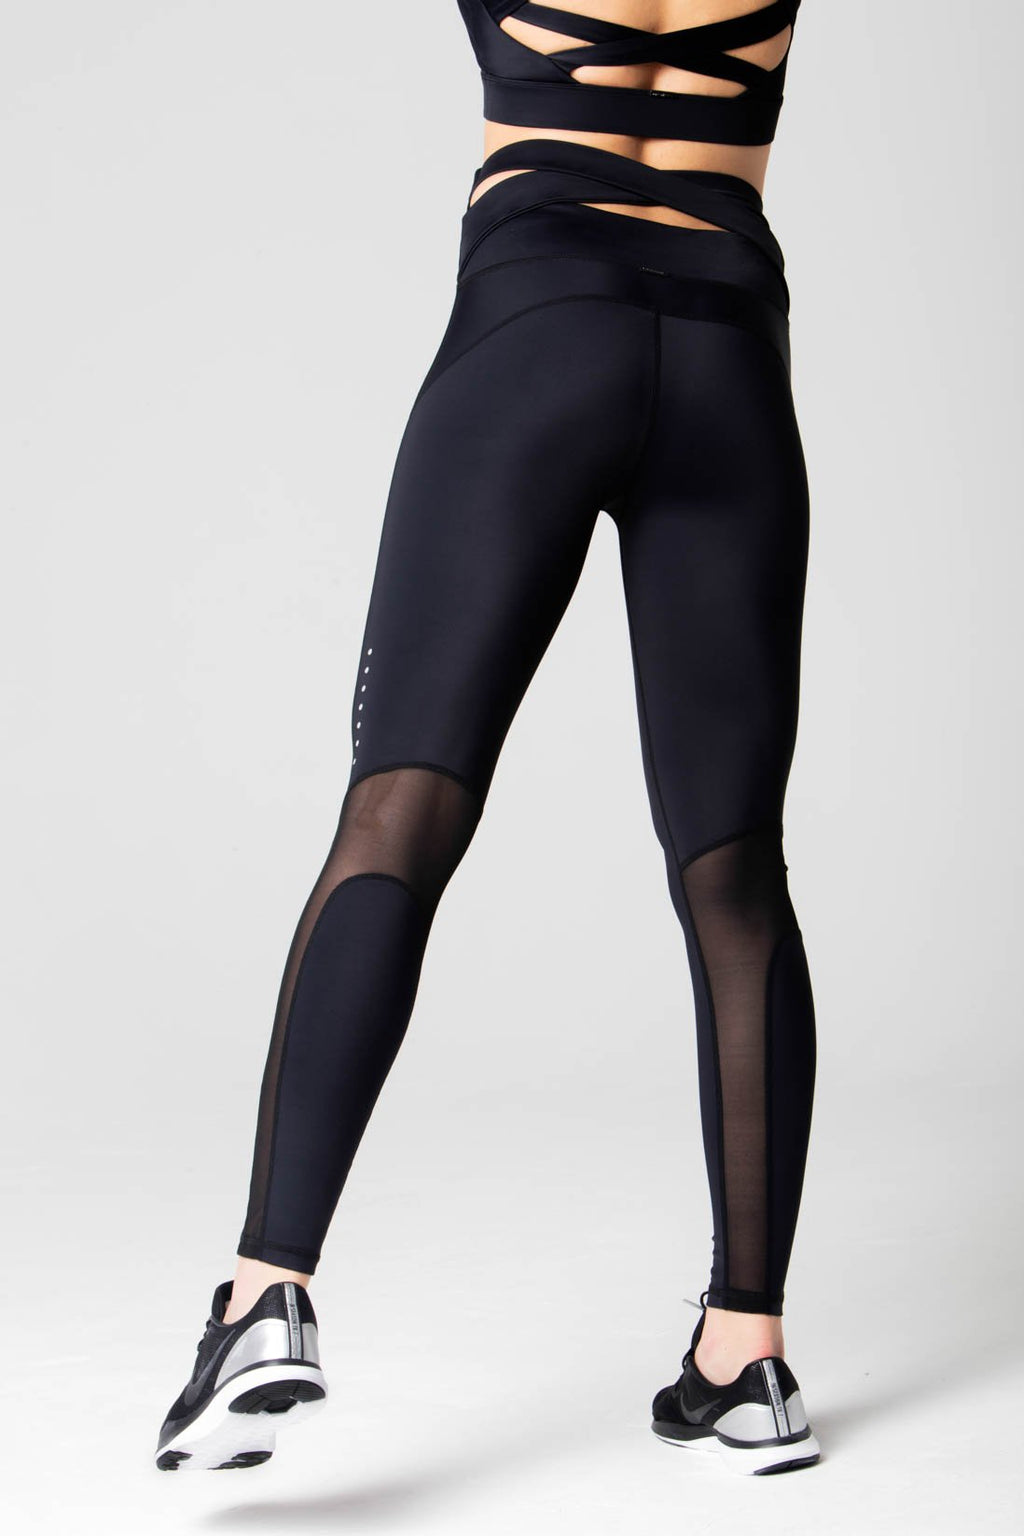 Natasha cross back legging